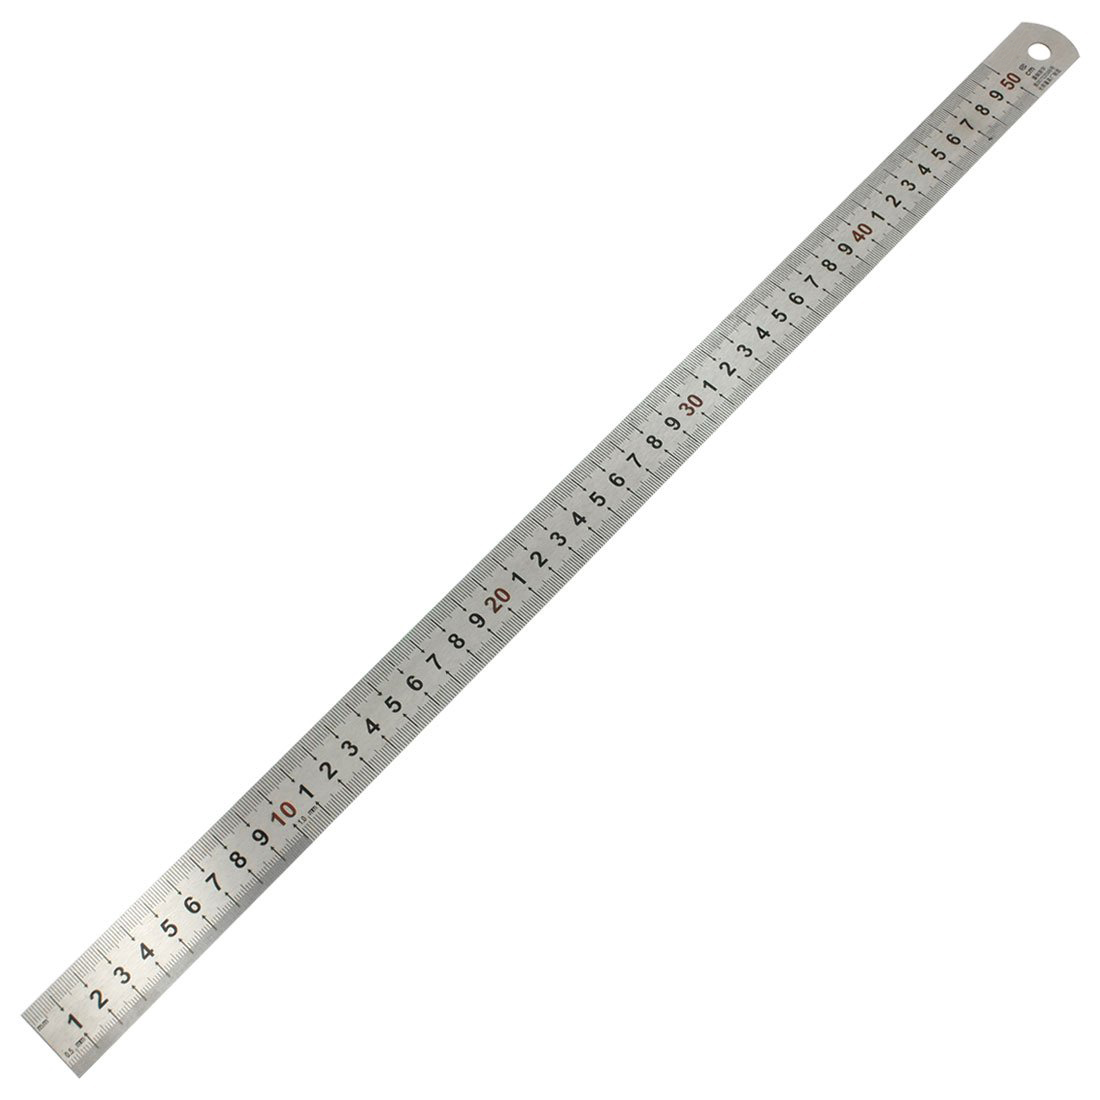 3 in 1 15cm 20cm 60cm Double Sides   Metric Straight Ruler Silver Tone